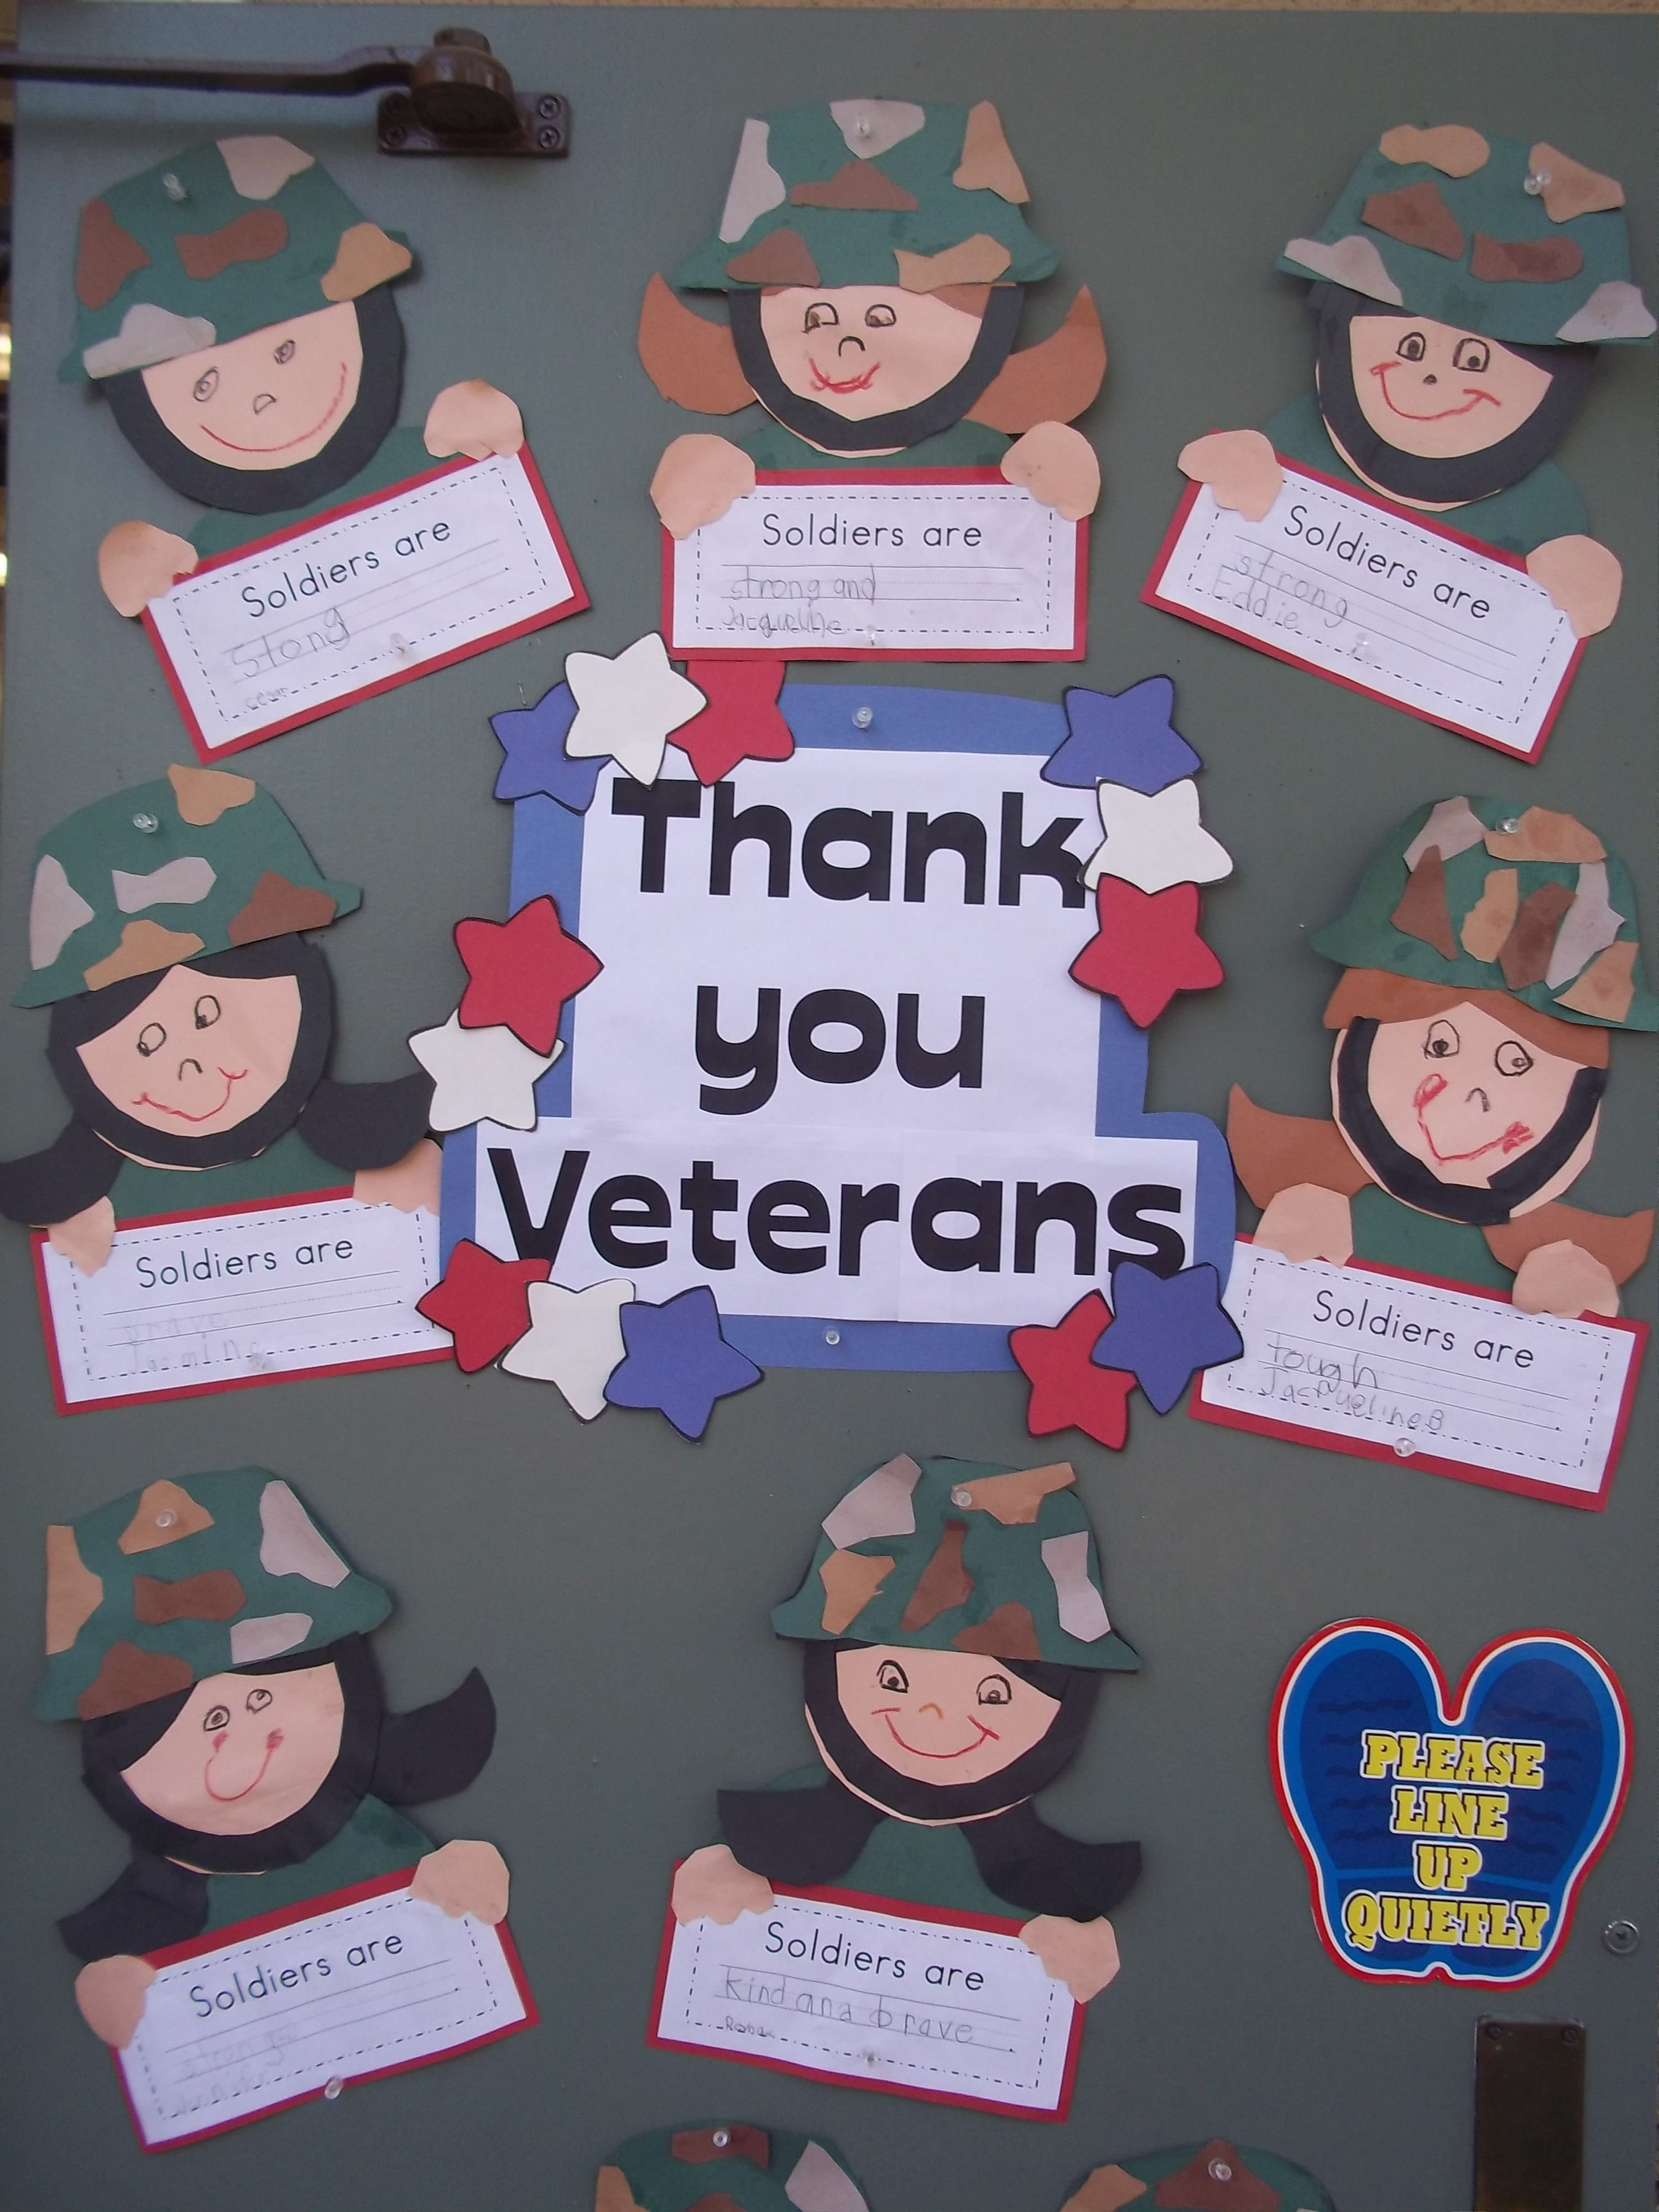 10 Lovely Veterans Day Bulletin Board Ideas military veterans this is a great idea for our veterans day 2020